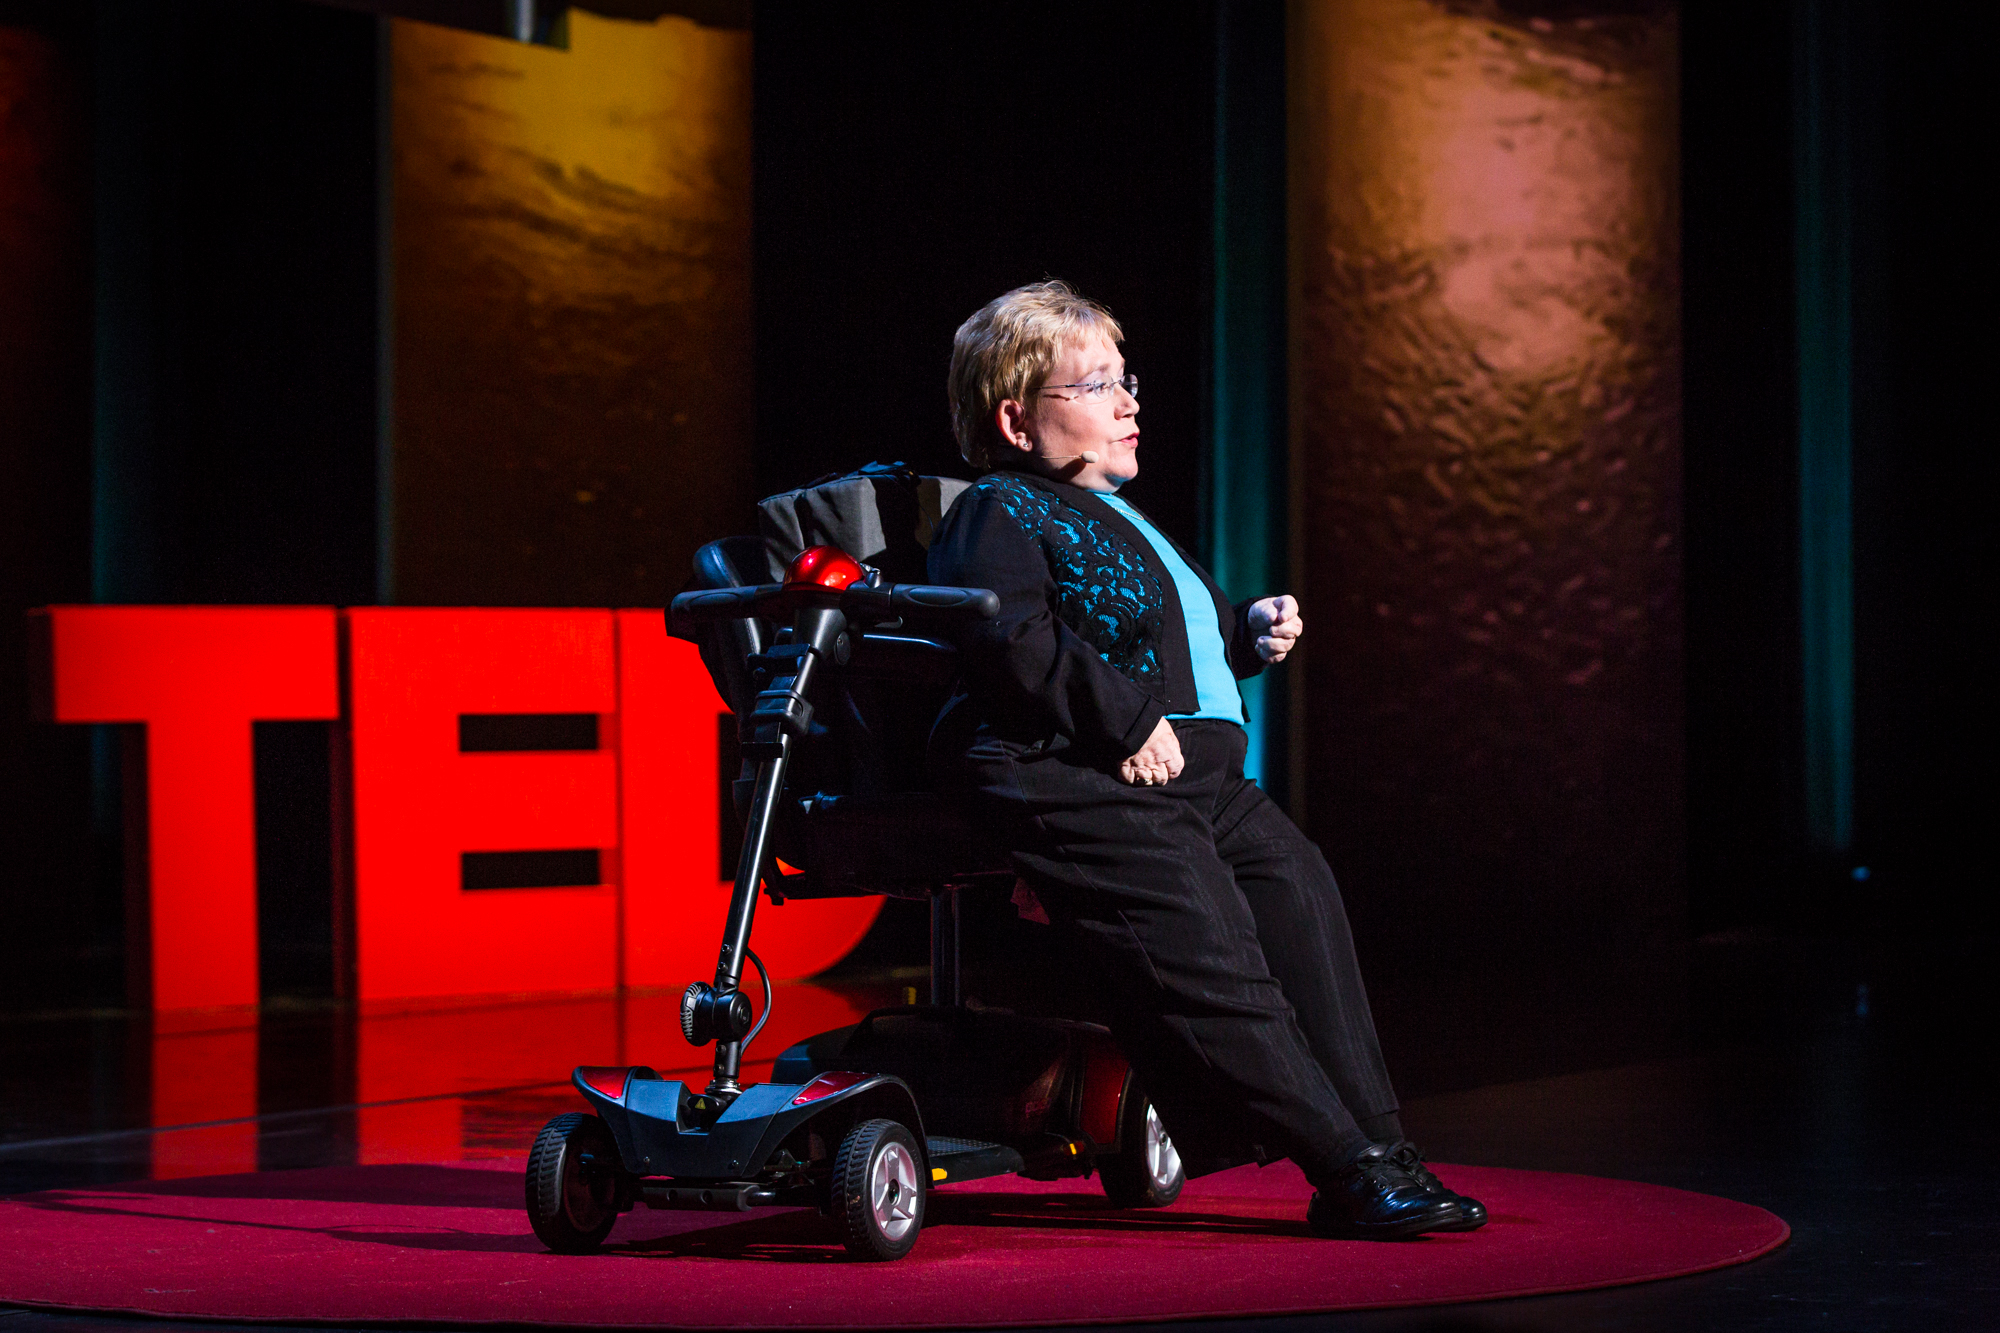 Michele L. Sullivan at TEDWomen 2016 - It's About Time, October 26-28, 2016, Yerba Buena Centre for the Arts, San Francisco, California. Photo: Marla Aufmuth / TED